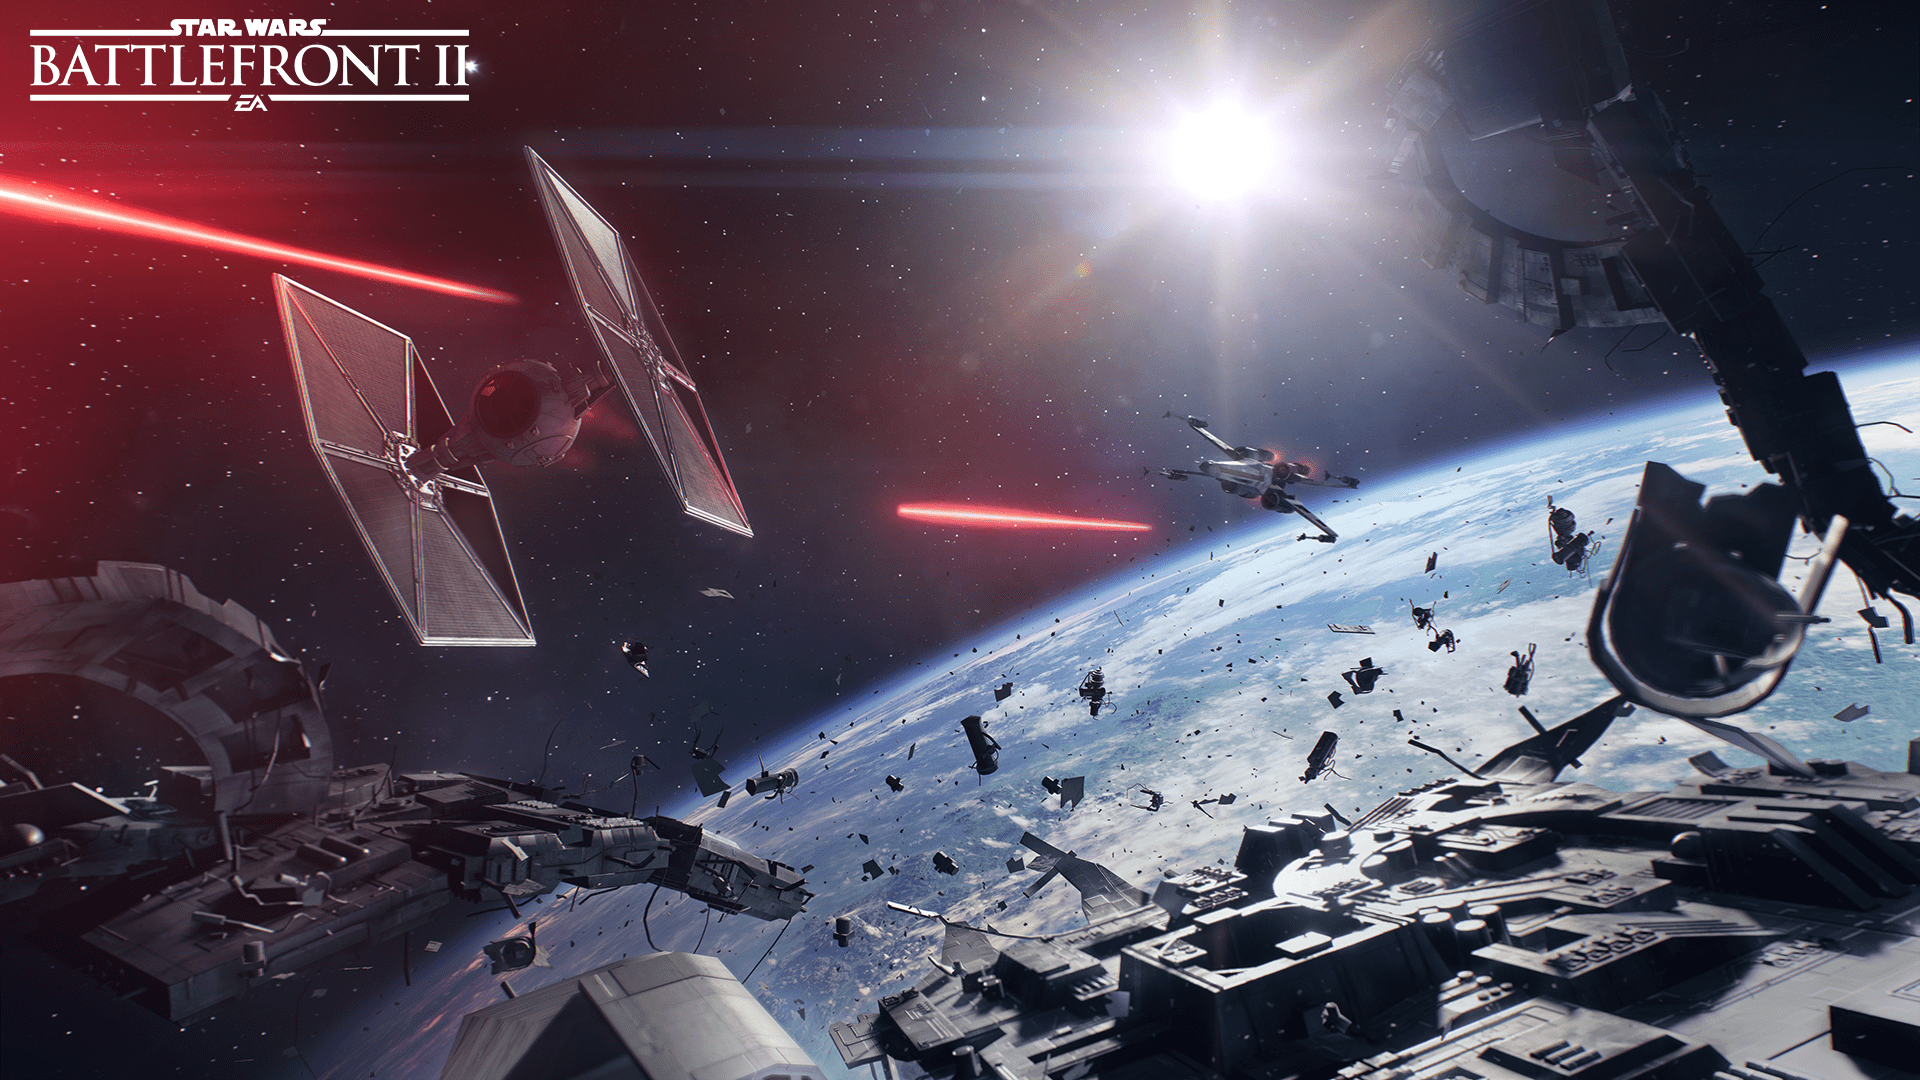 Star Wars Battlefront 2 - Space battle debris field